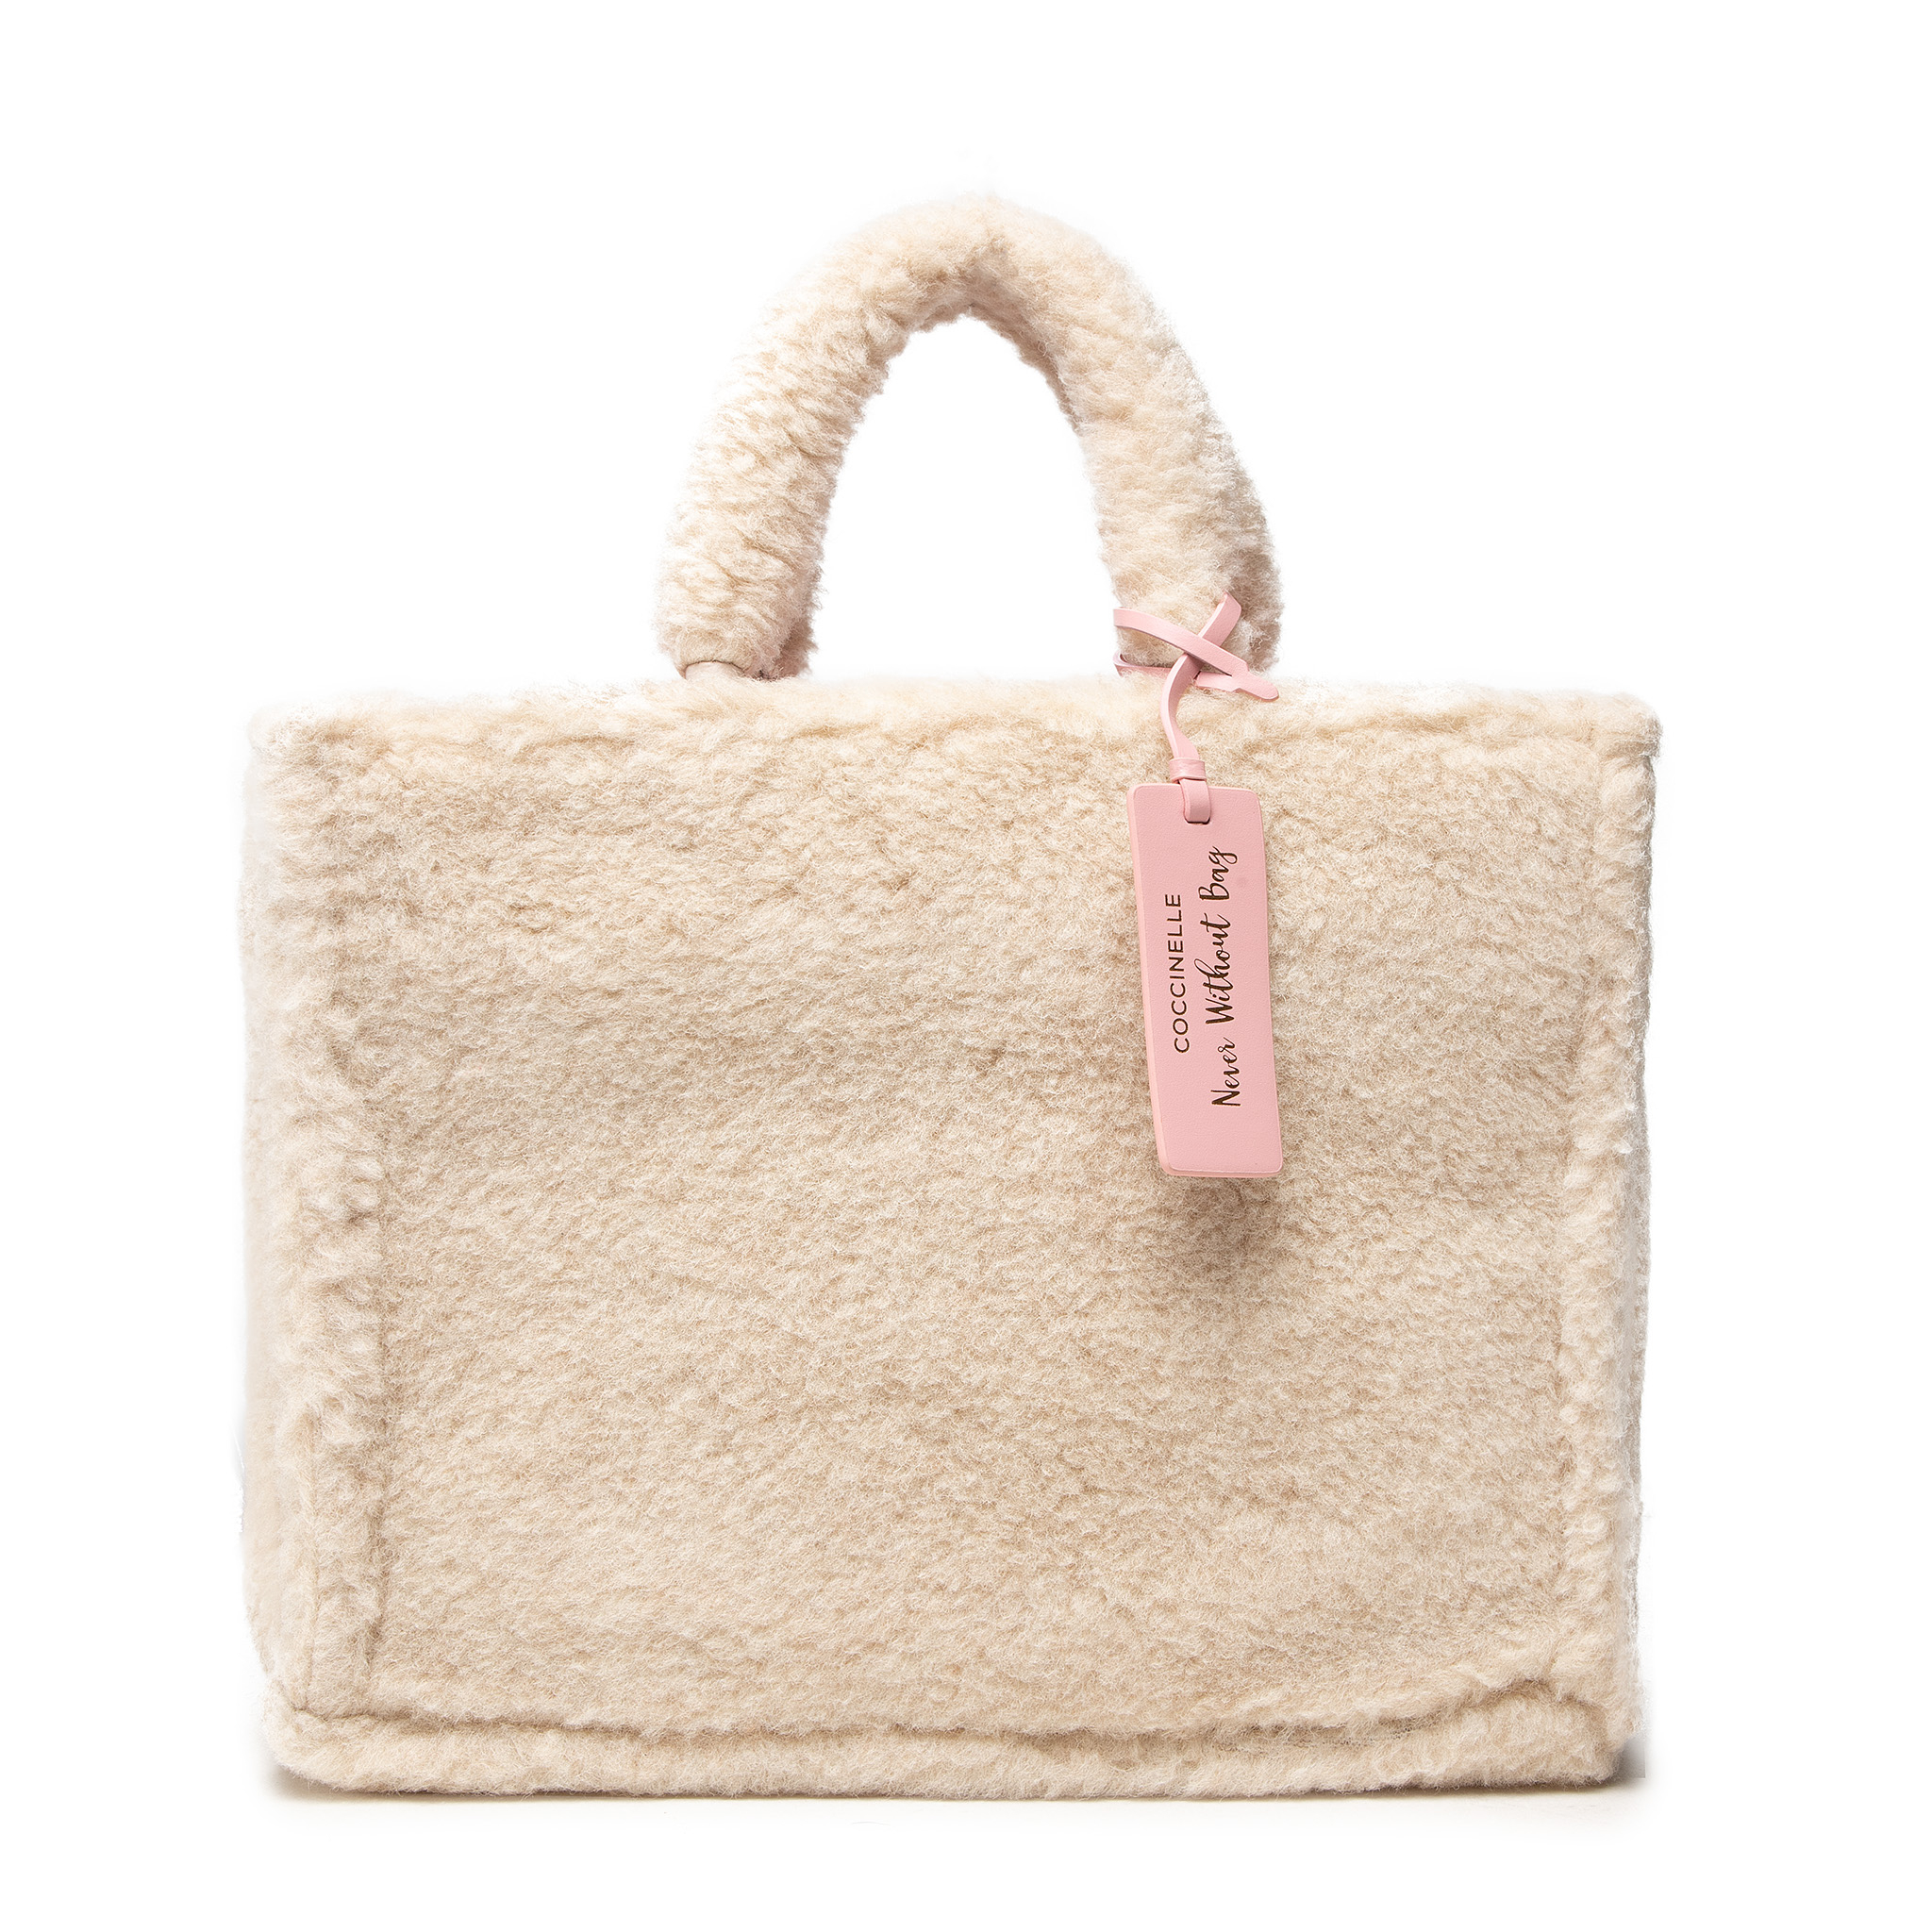 Coccinelle IQ9 Never Without Bag Ecoshea E1 IQ9 18 02 01 Powder Pink N80